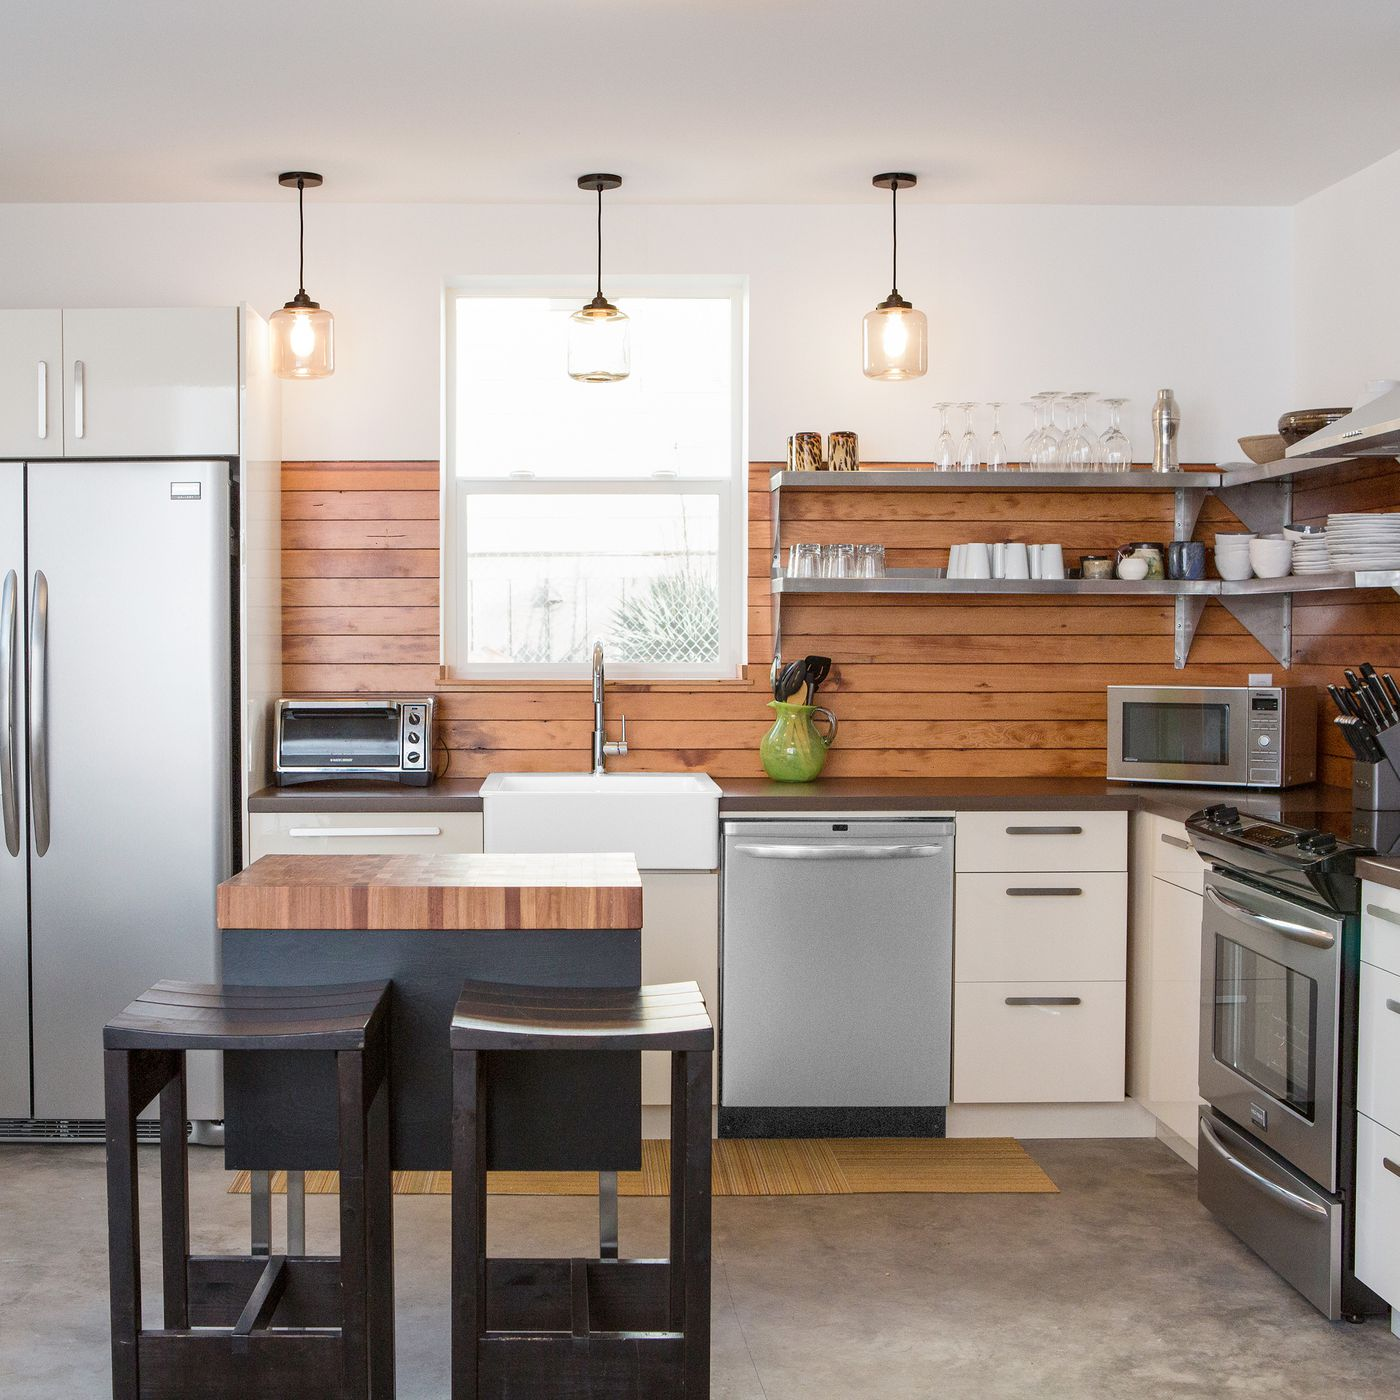 How To Care For A Wood Backsplash This Old House